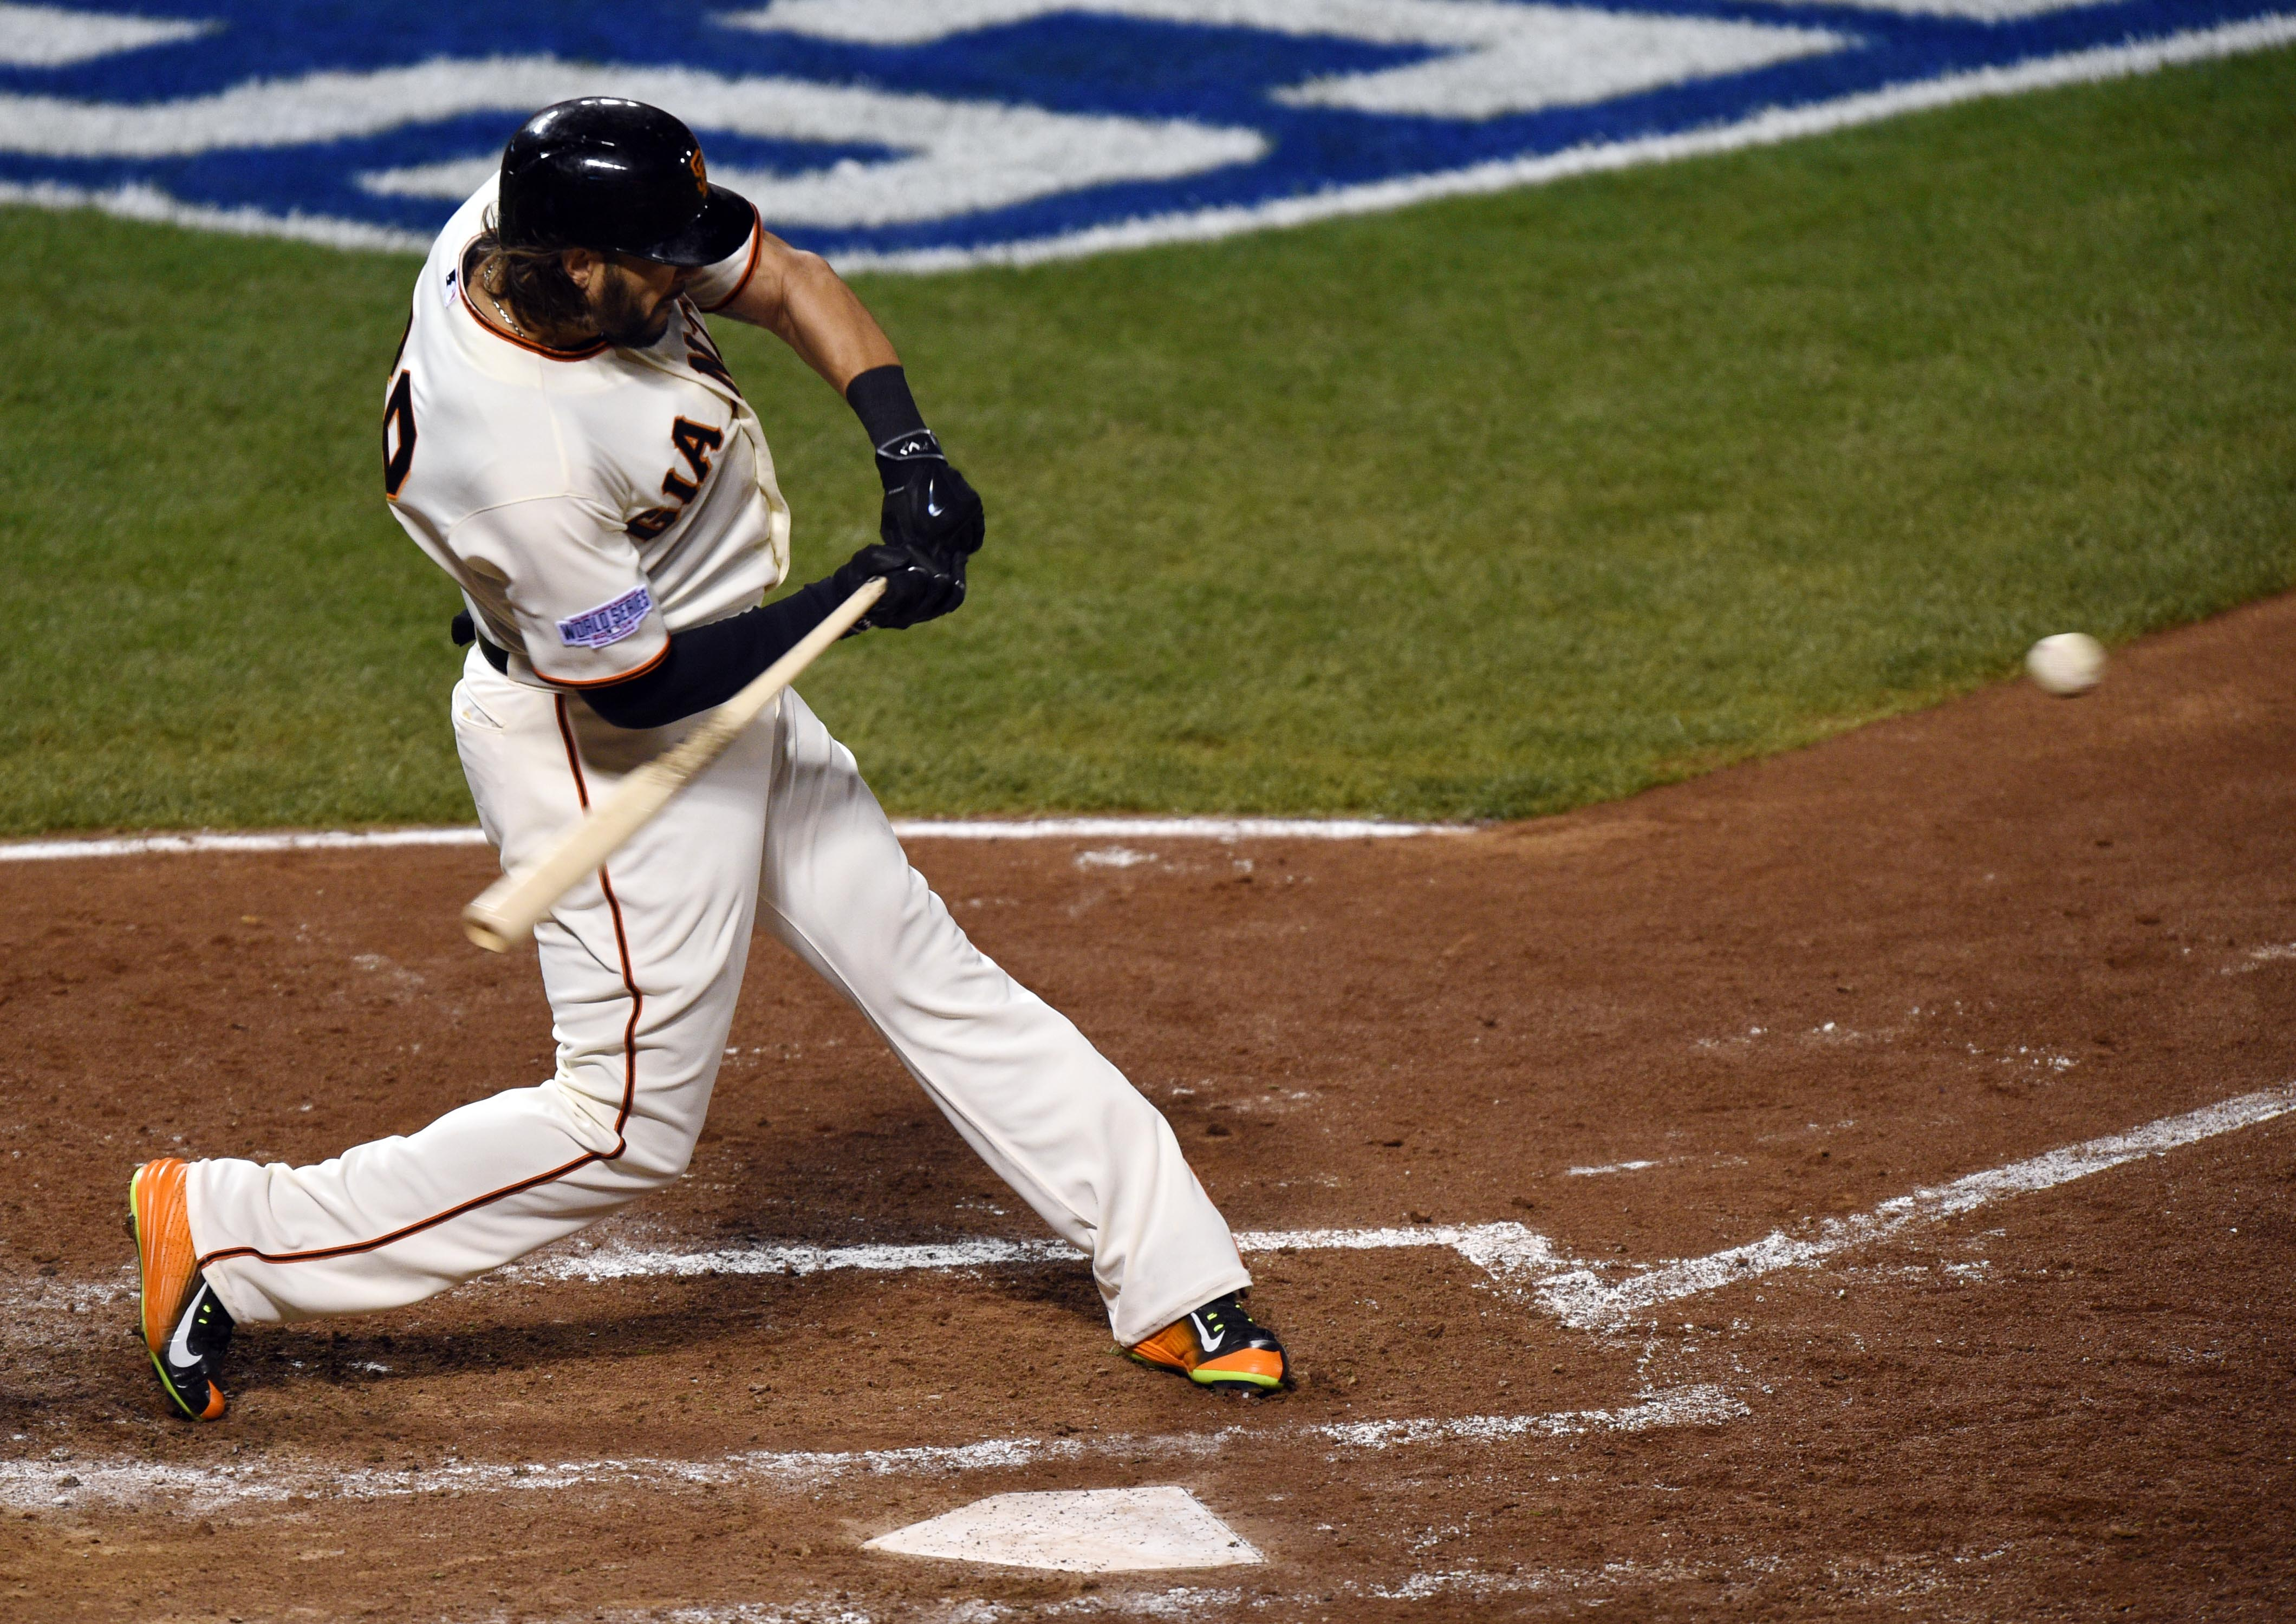 Michael Morse came off the bench with a big hit for the Giants. (USA TODAY Sports)